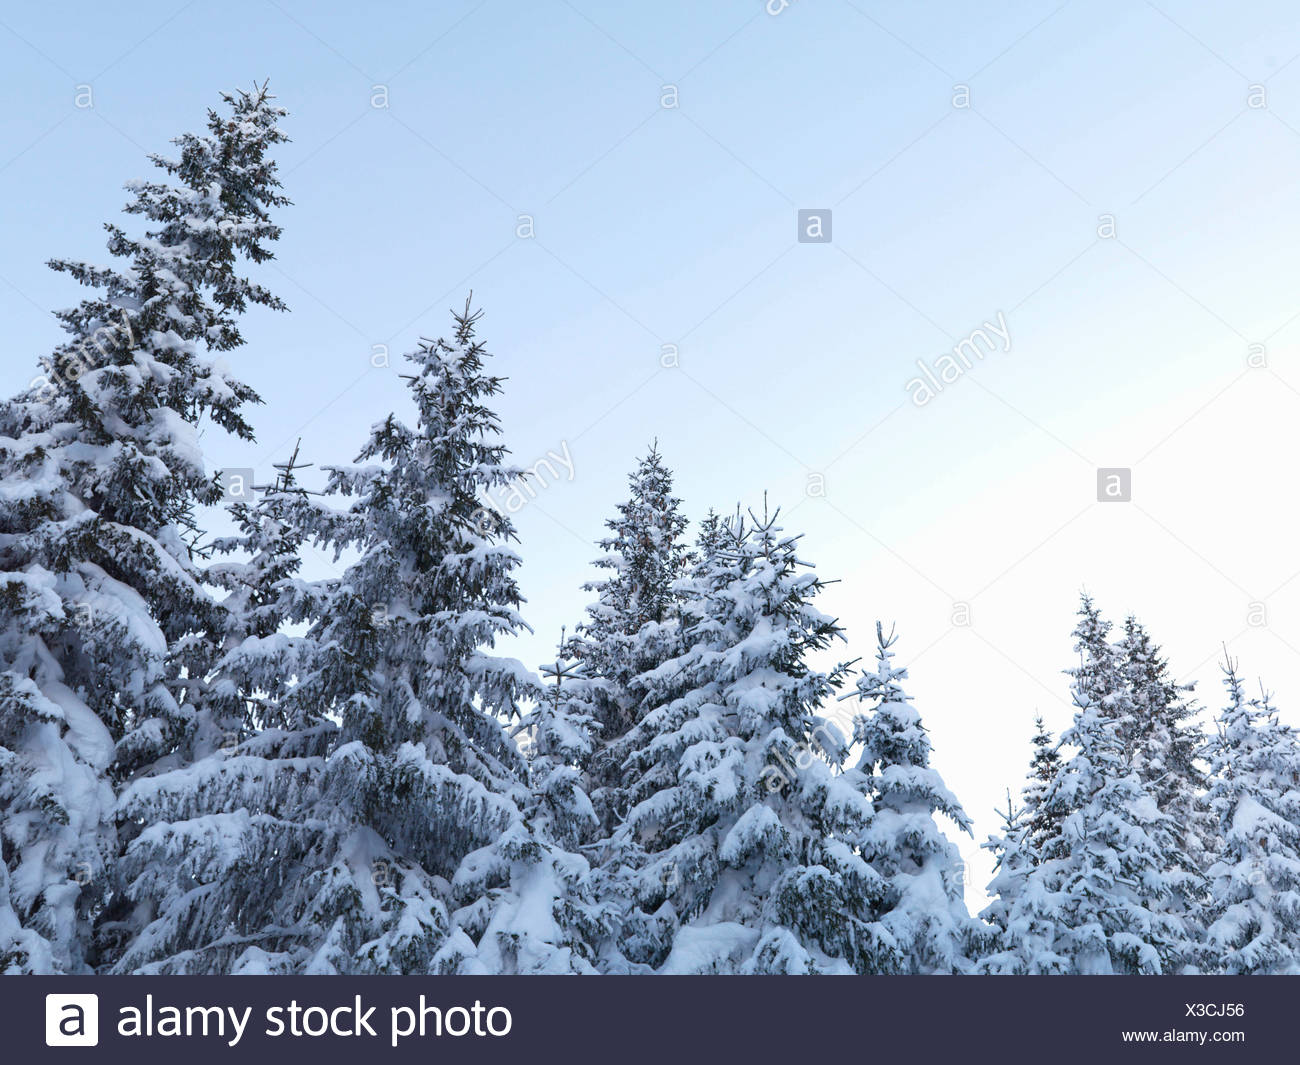 Snow-covered pine trees - Stock Image